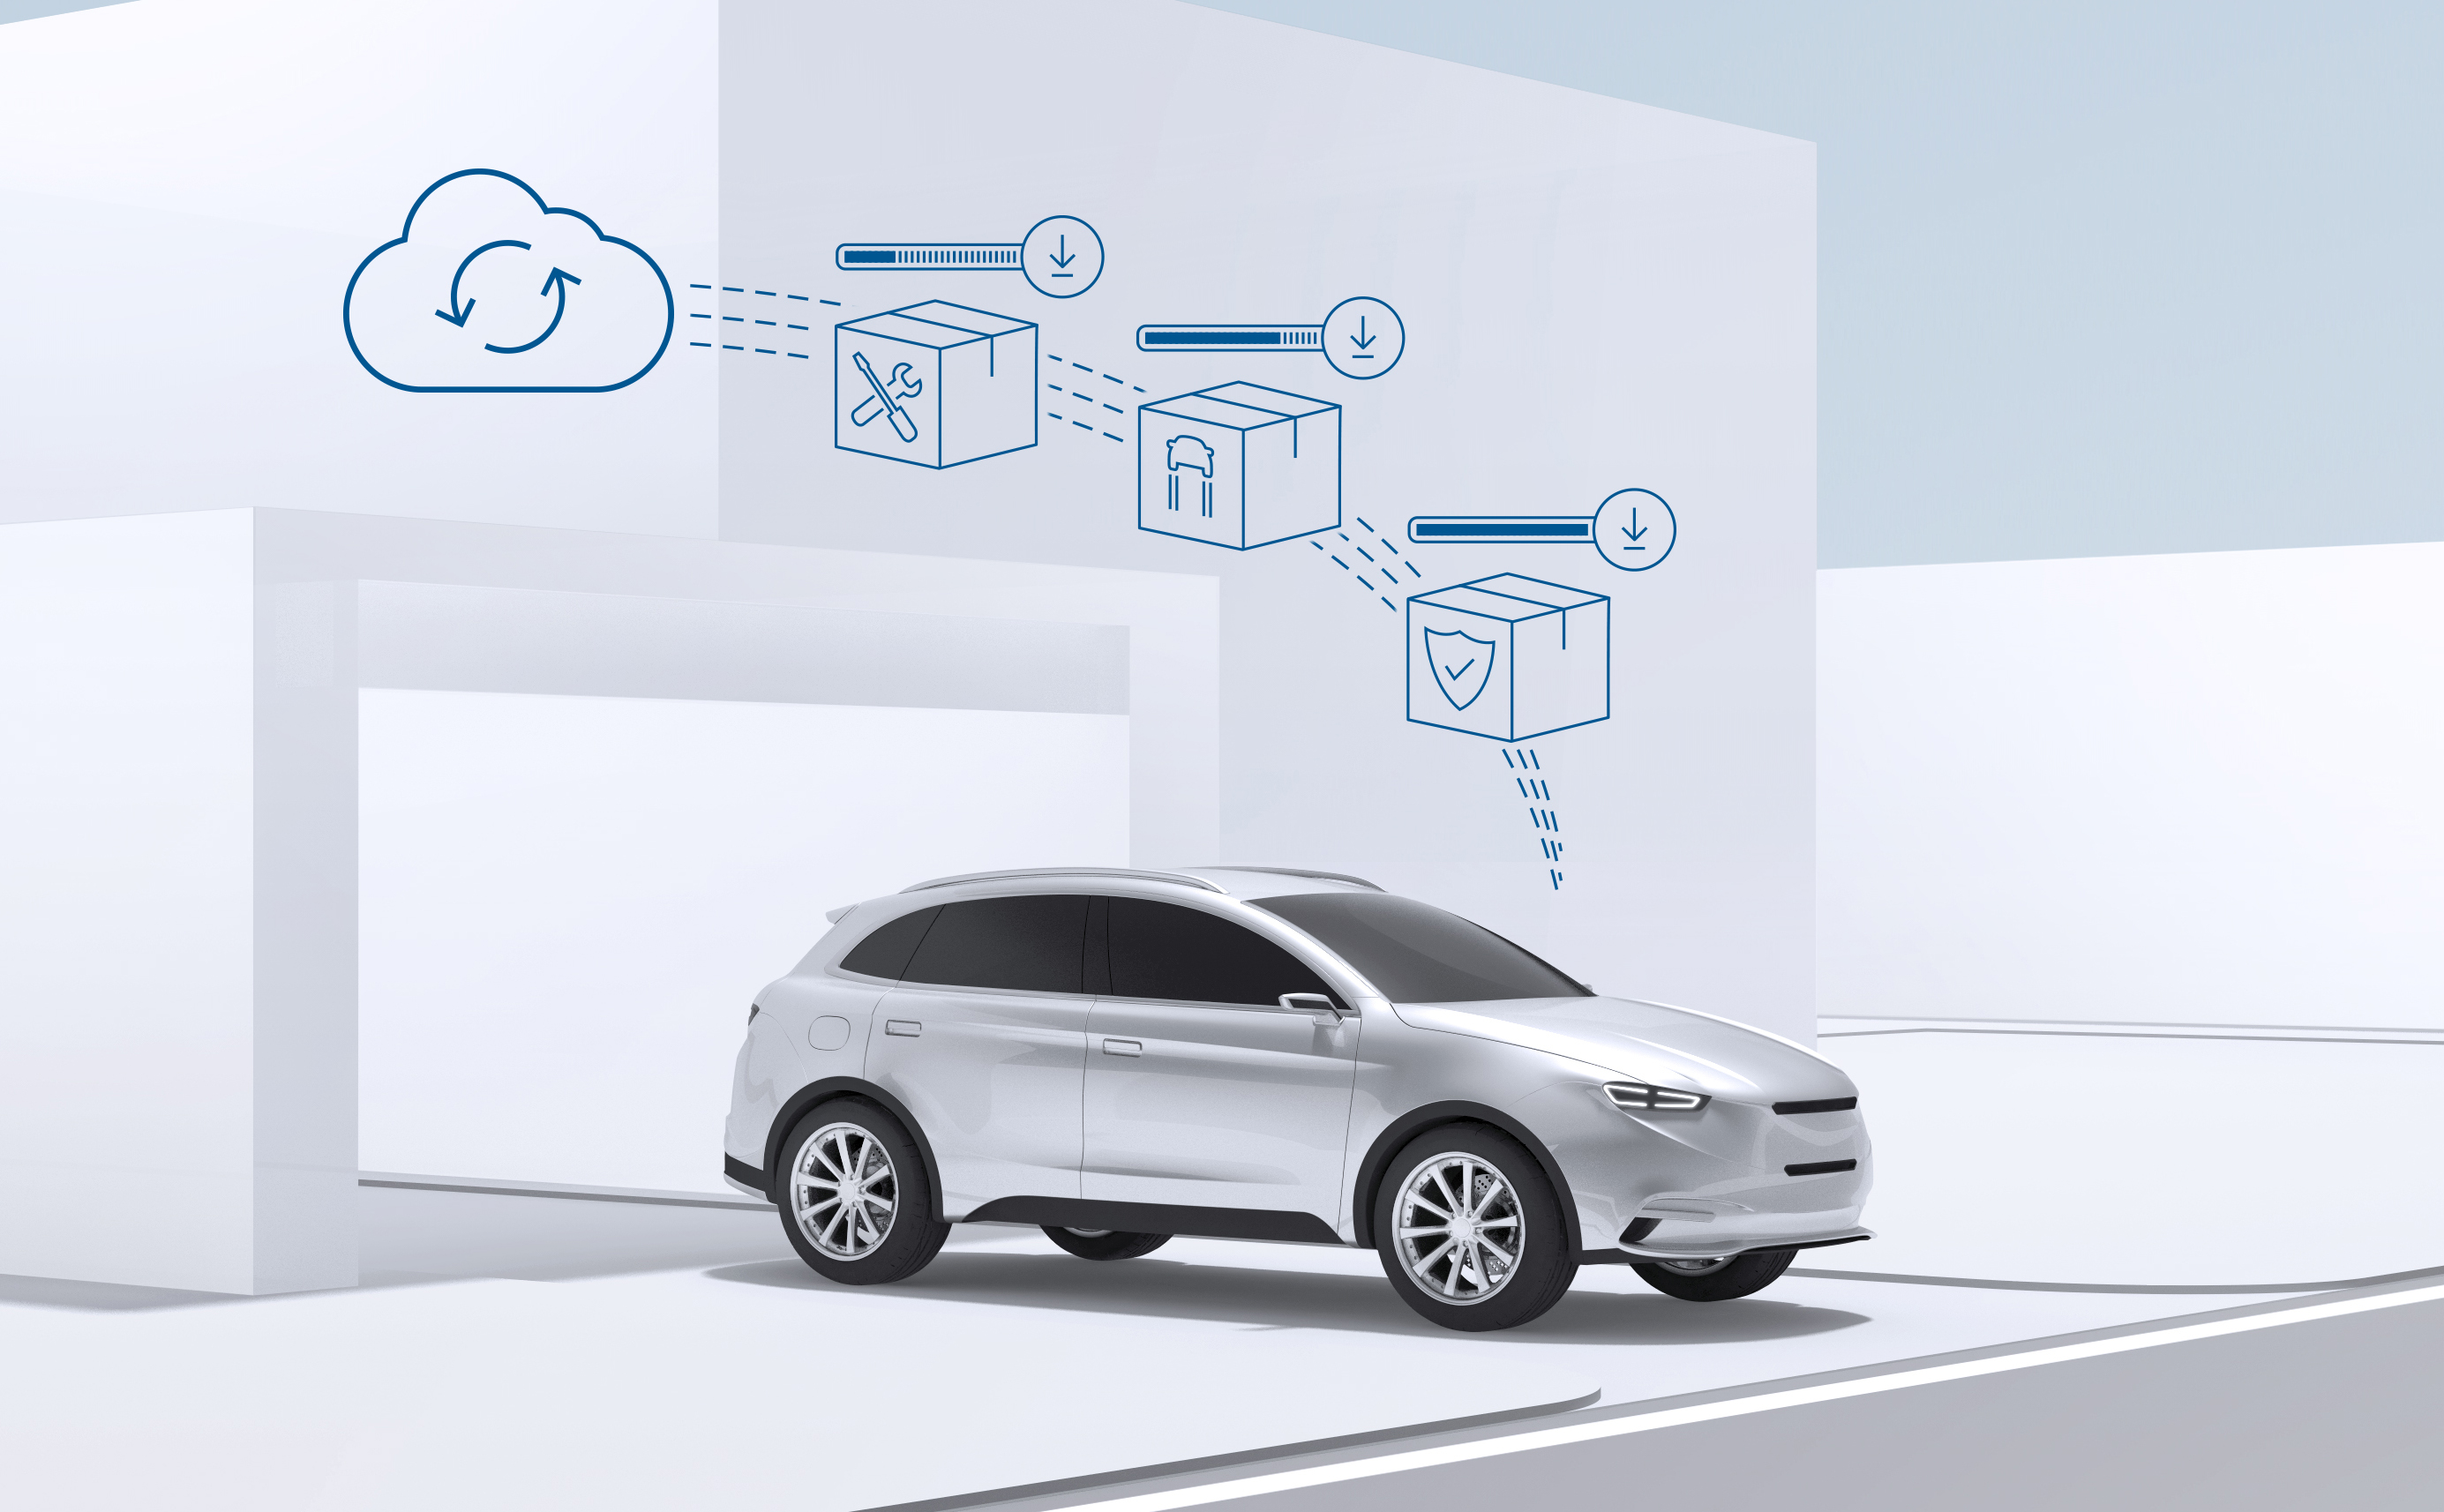 With updates over the air Bosch keeps cars up to date - securely